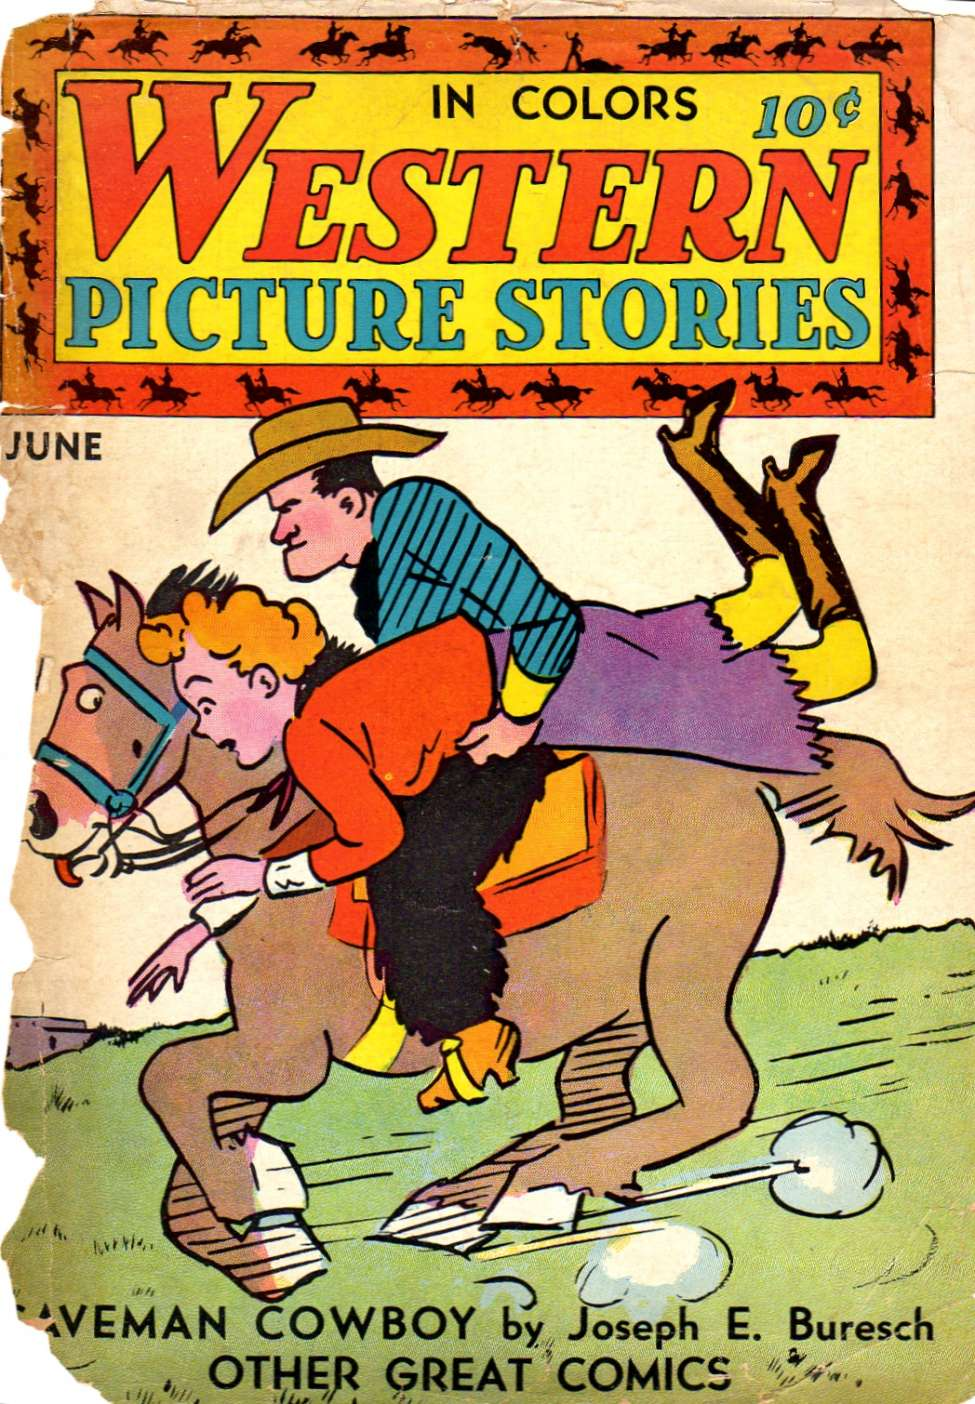 Comic Book Cover For Western Picture Stories #4